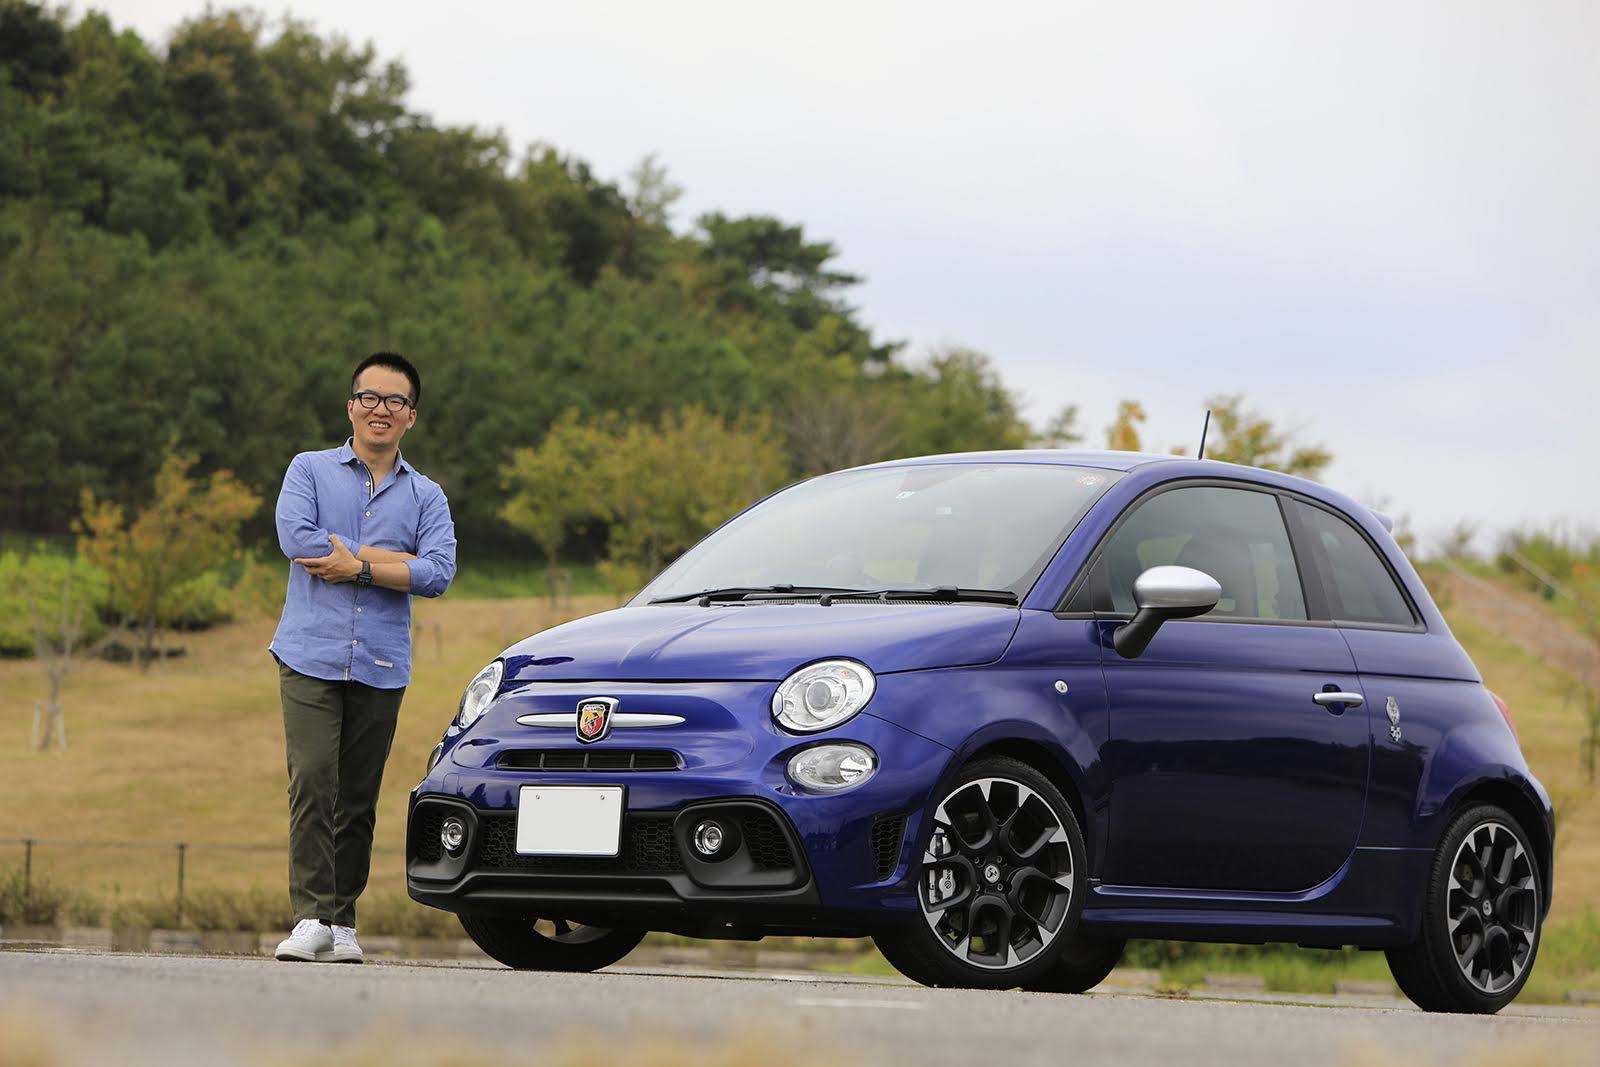 191025_Abarth_Owner_01